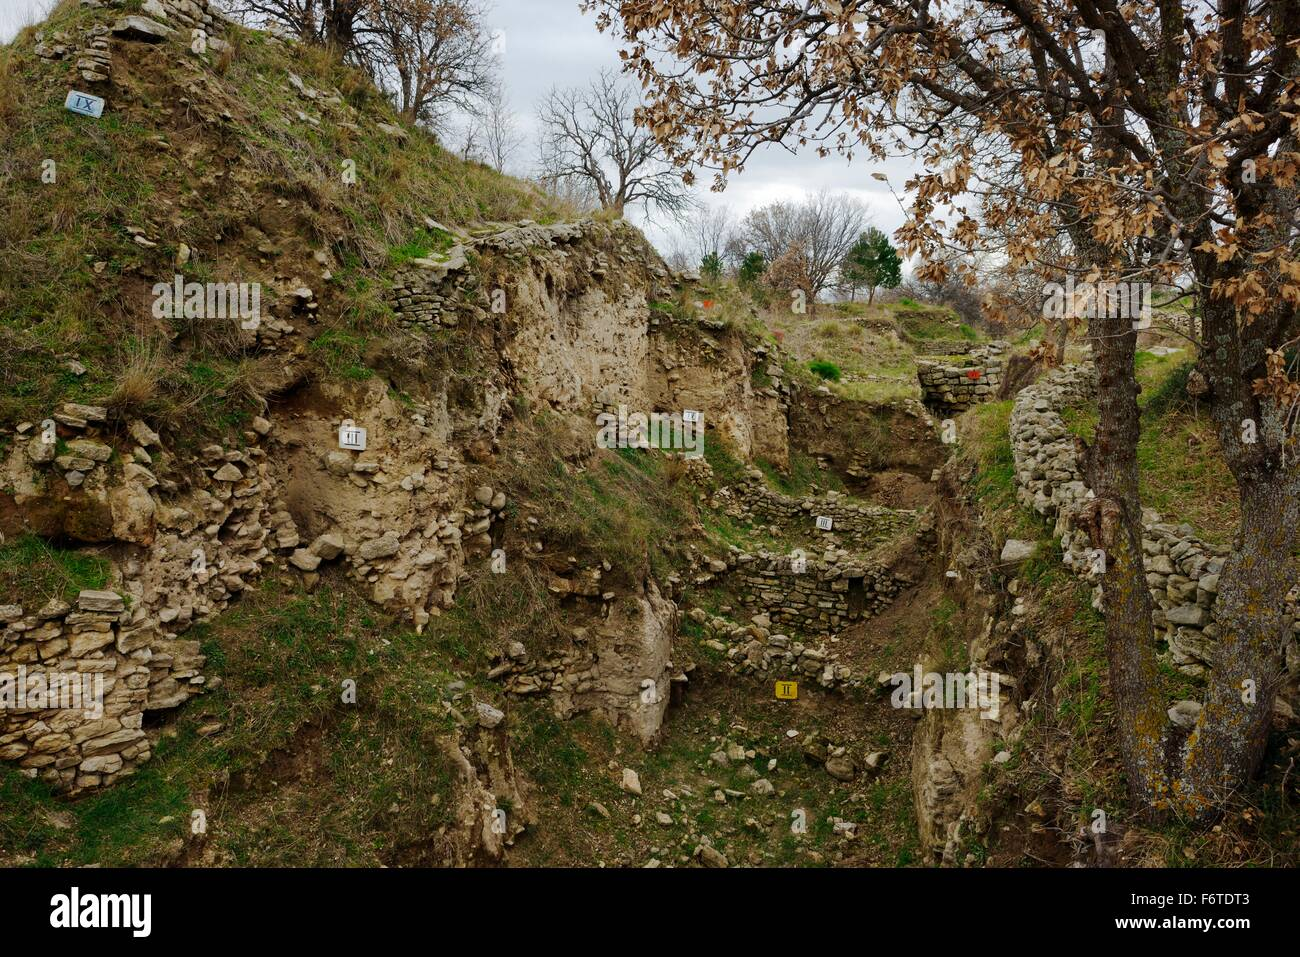 Troy, Anatolia, Turkey. Labelled exposed sections of the ancient ruins showing habitation levels I to IX dating - Stock Image